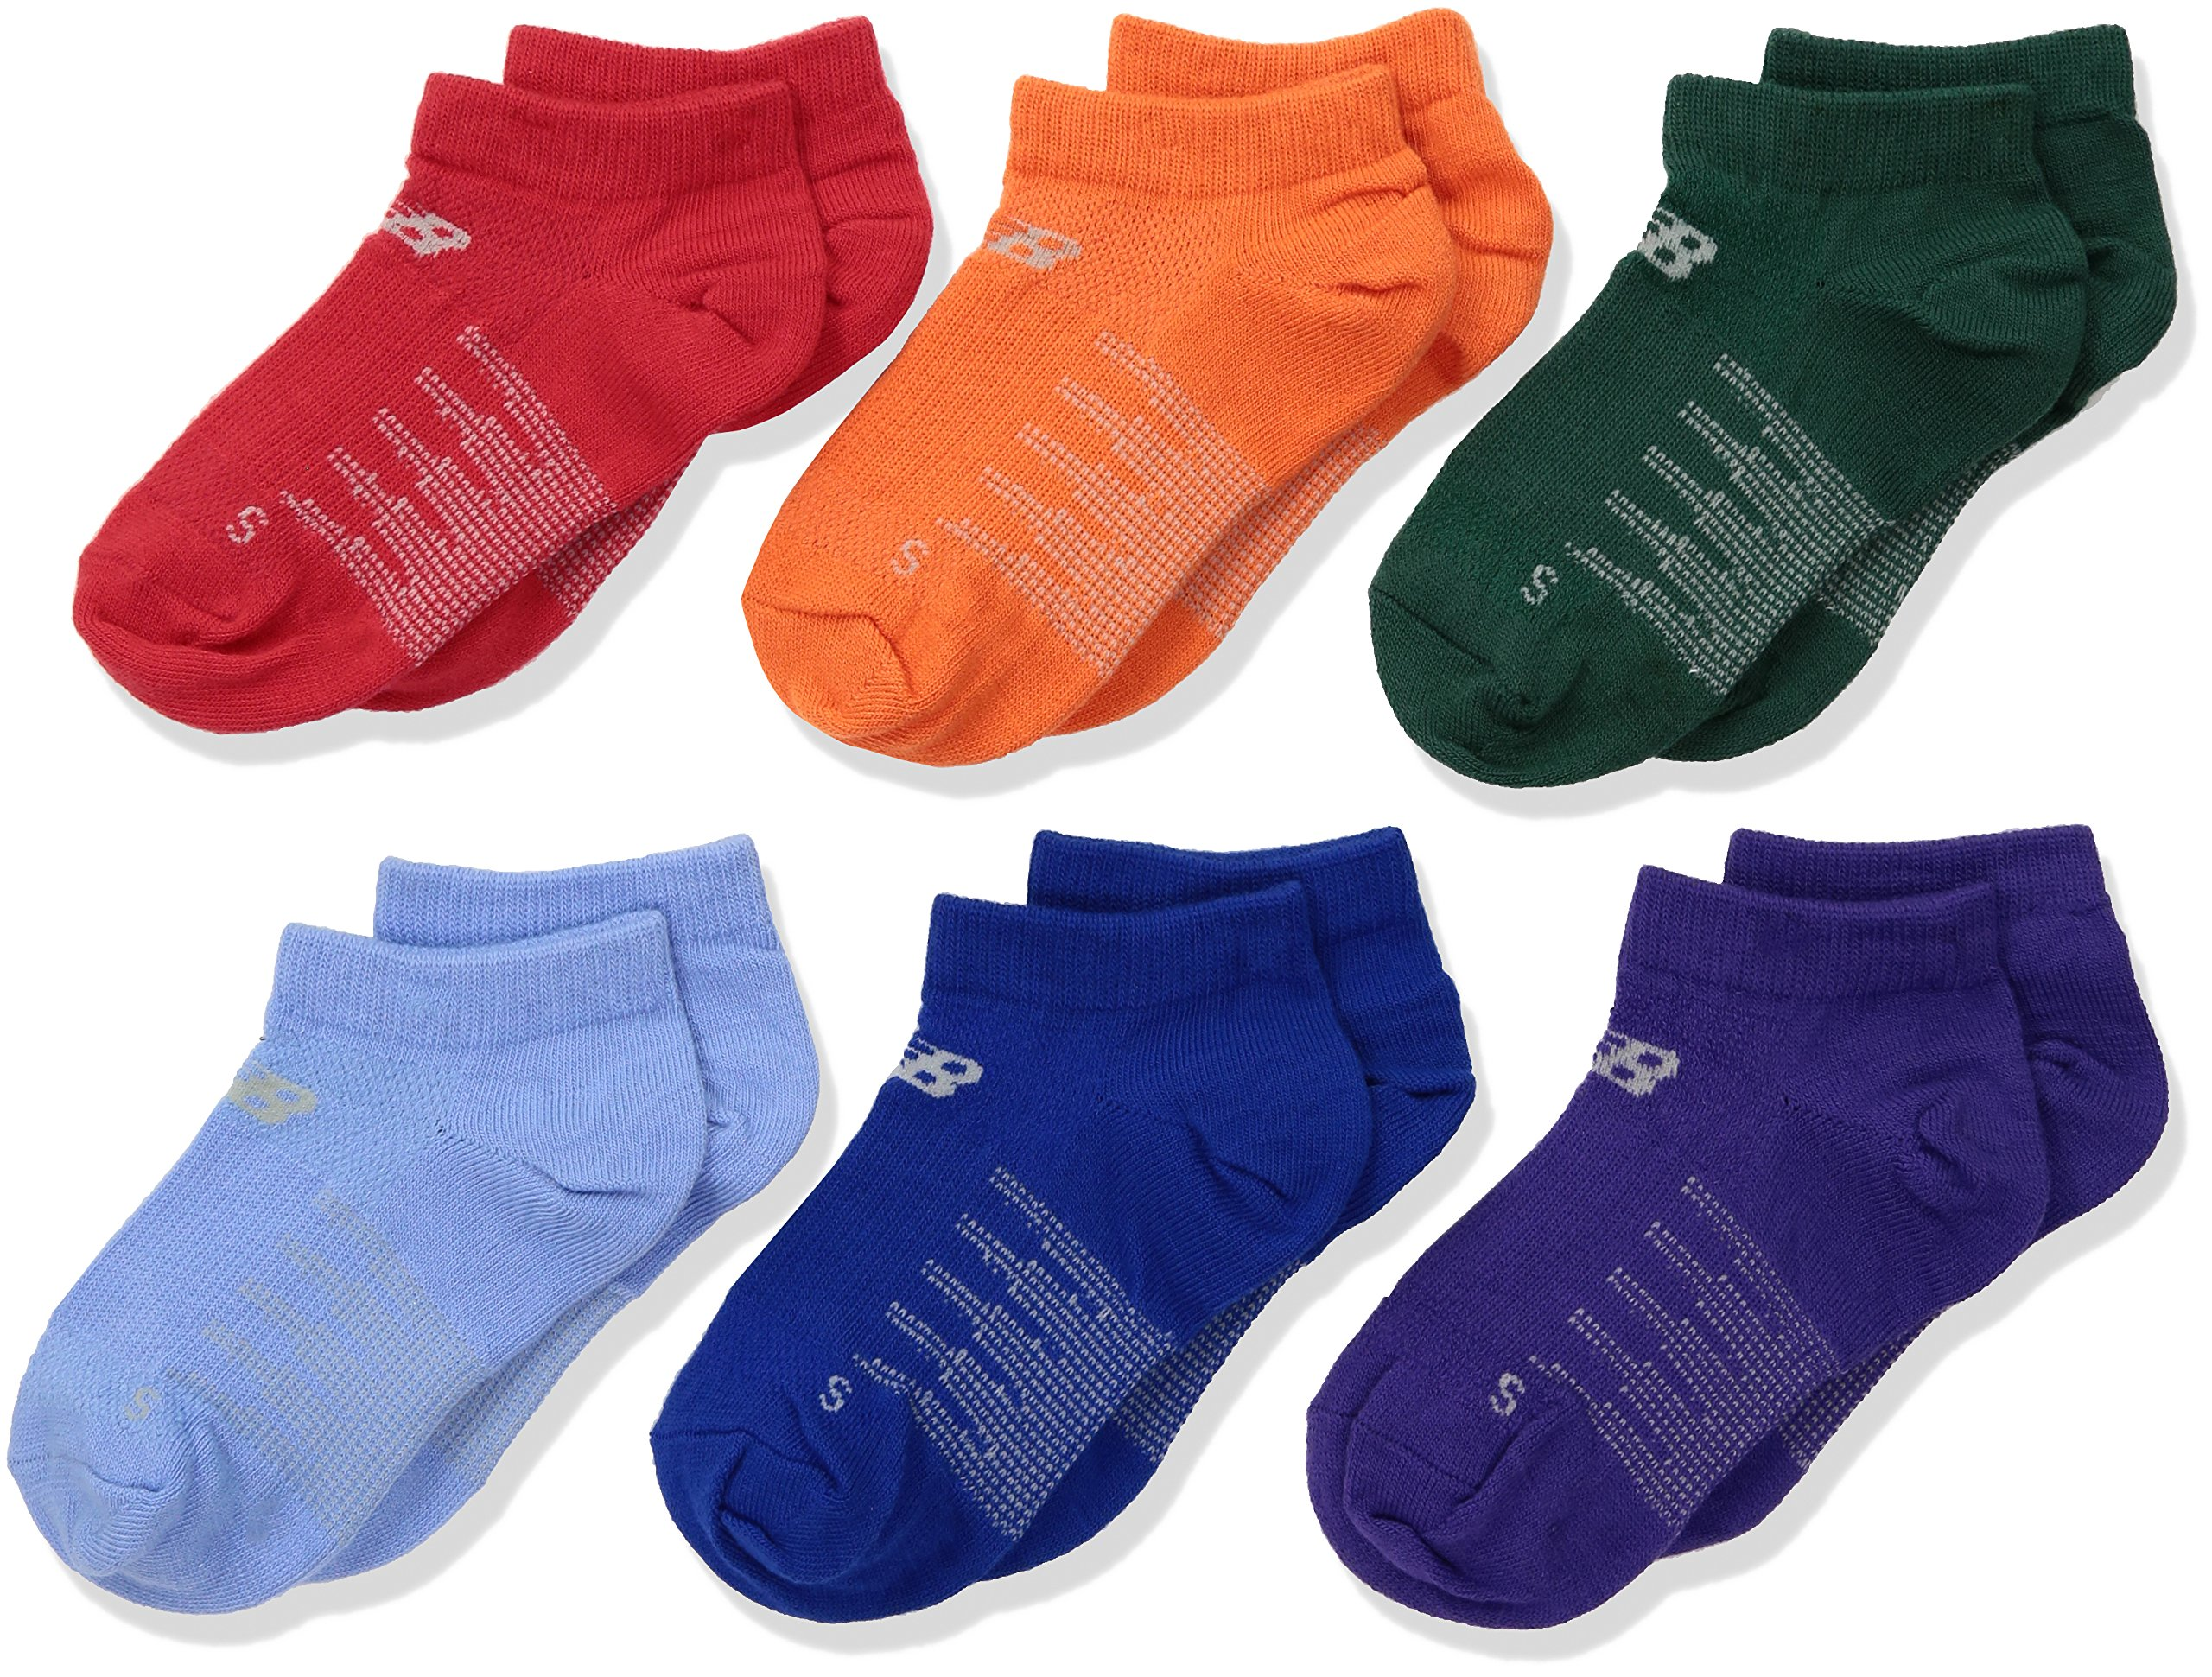 New Balance Children's No Show Socks (6 Pack),Red/Orange/Light Blue/Navy/Purple/Dark Green, Shoe Size 5.5-9 (Small) by New Balance